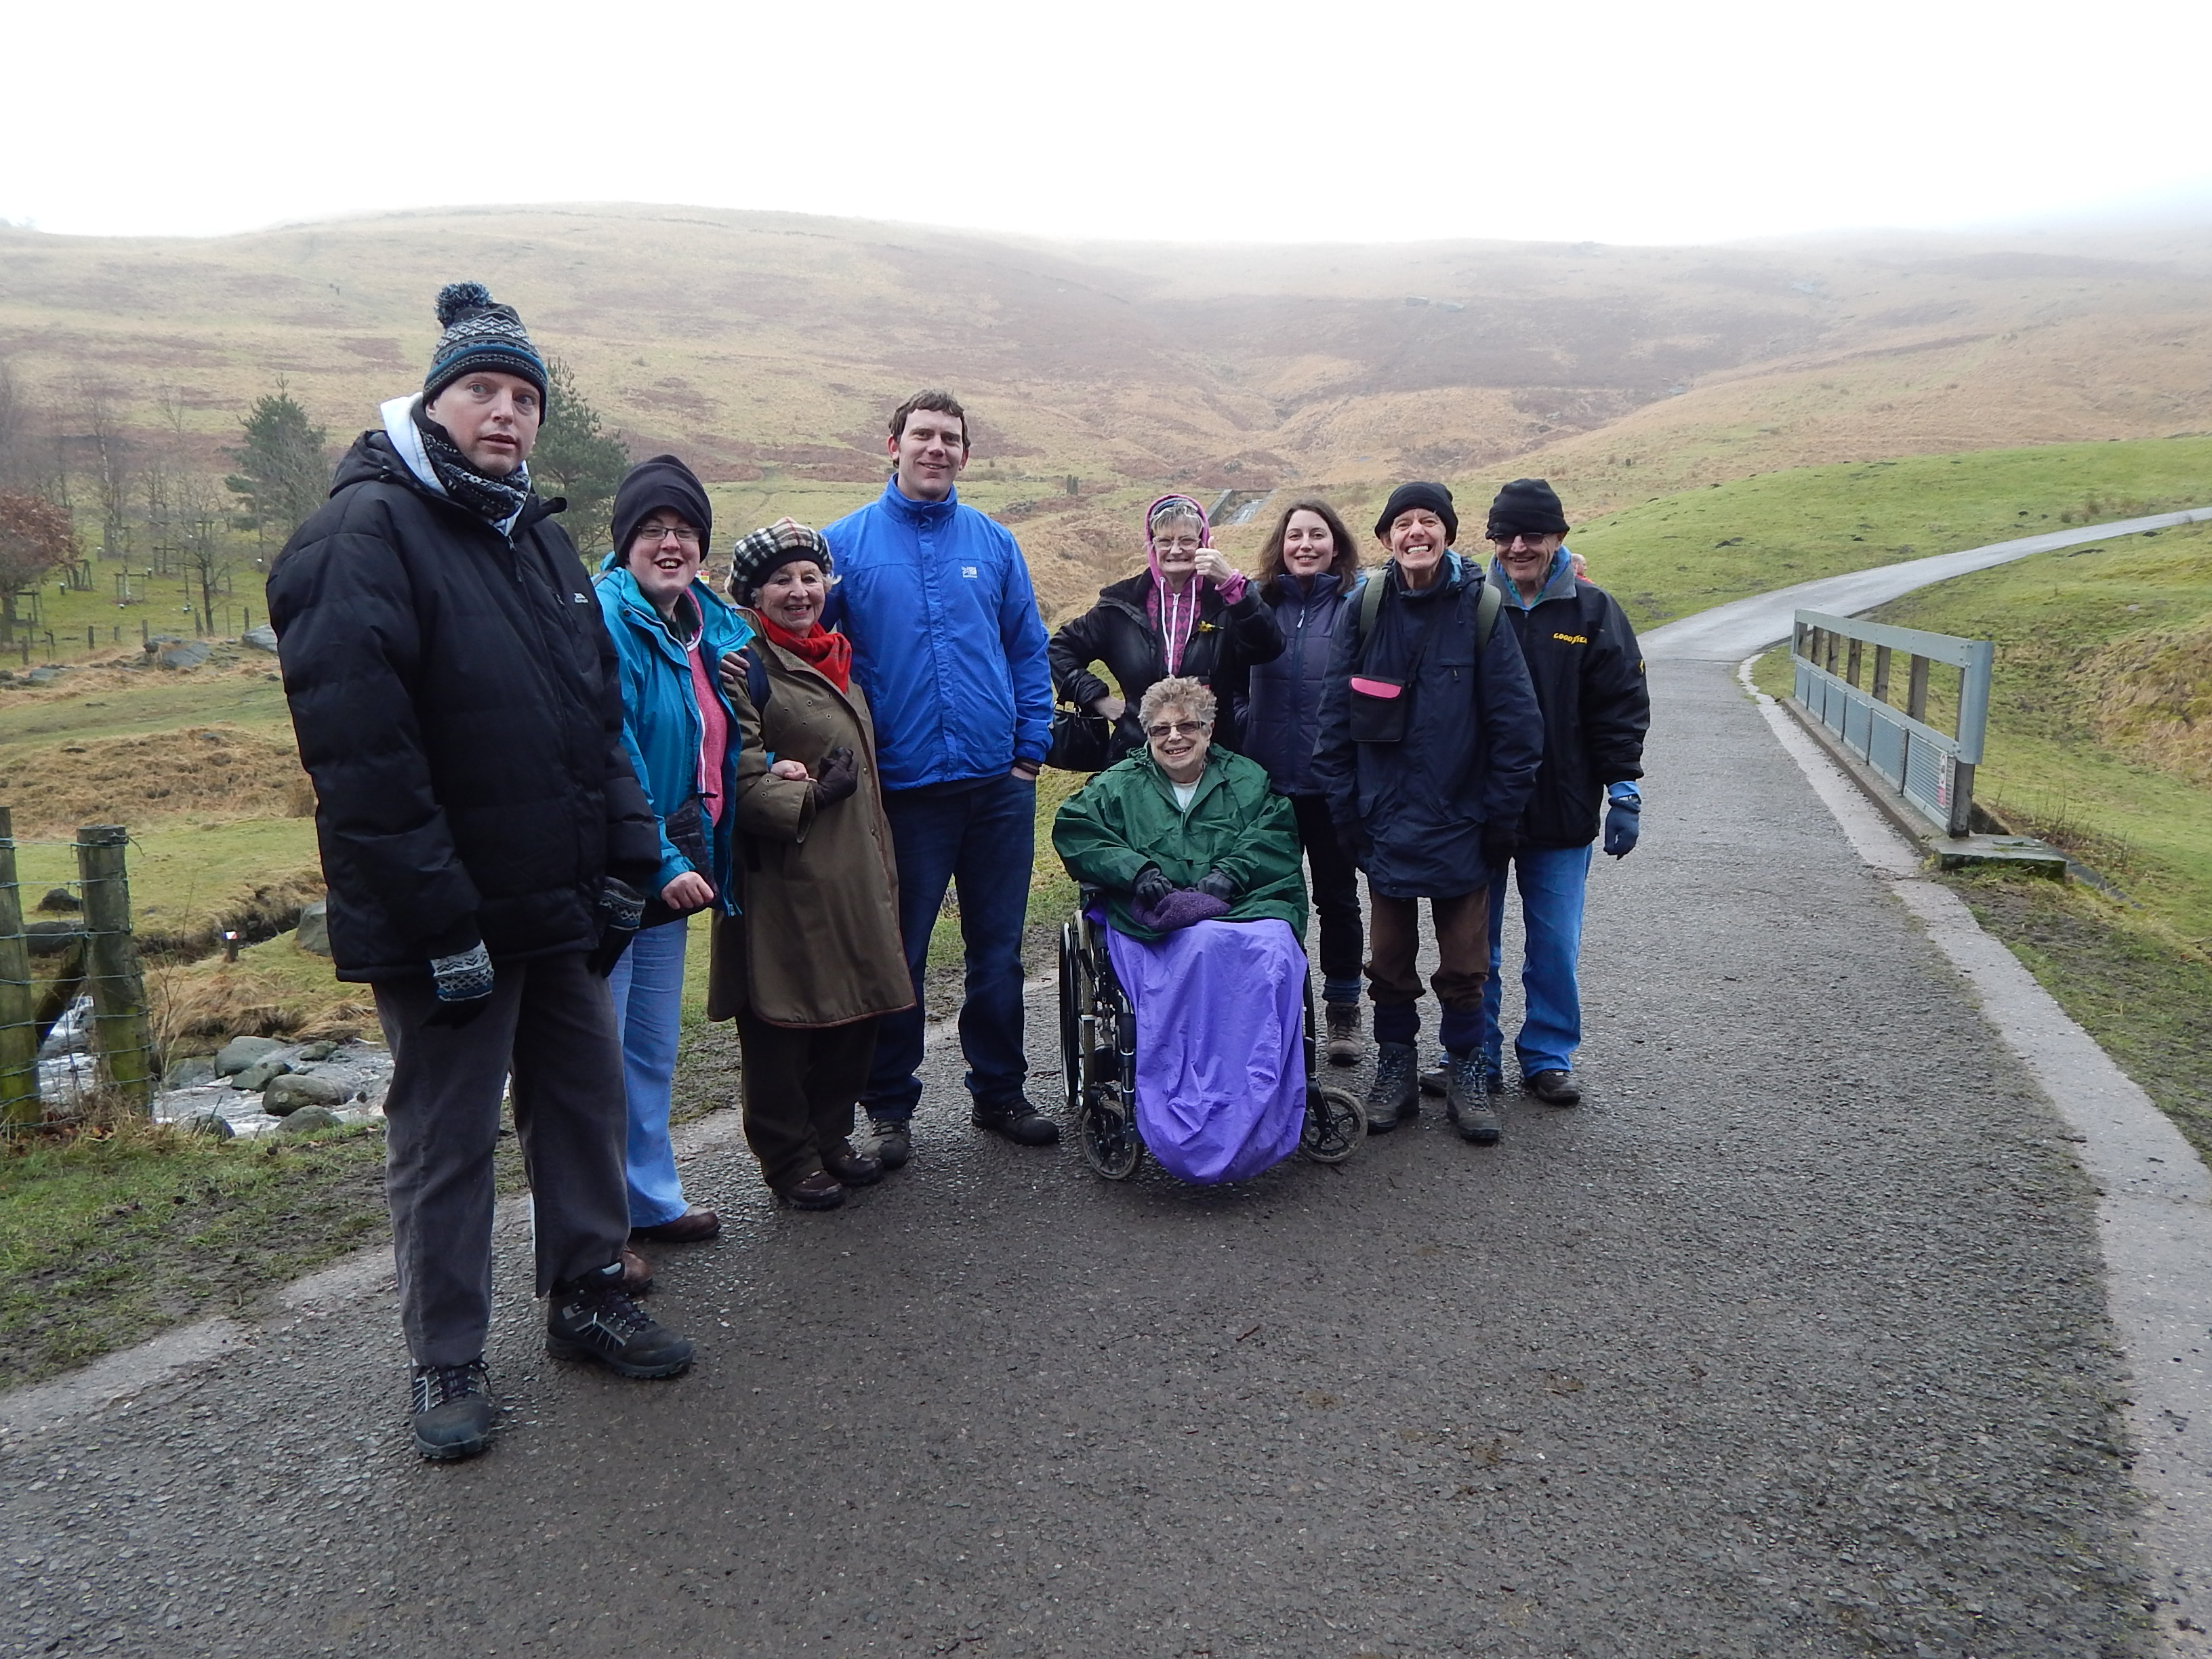 A group of people, one in a wheelchair, on a path with hills and mist behind.